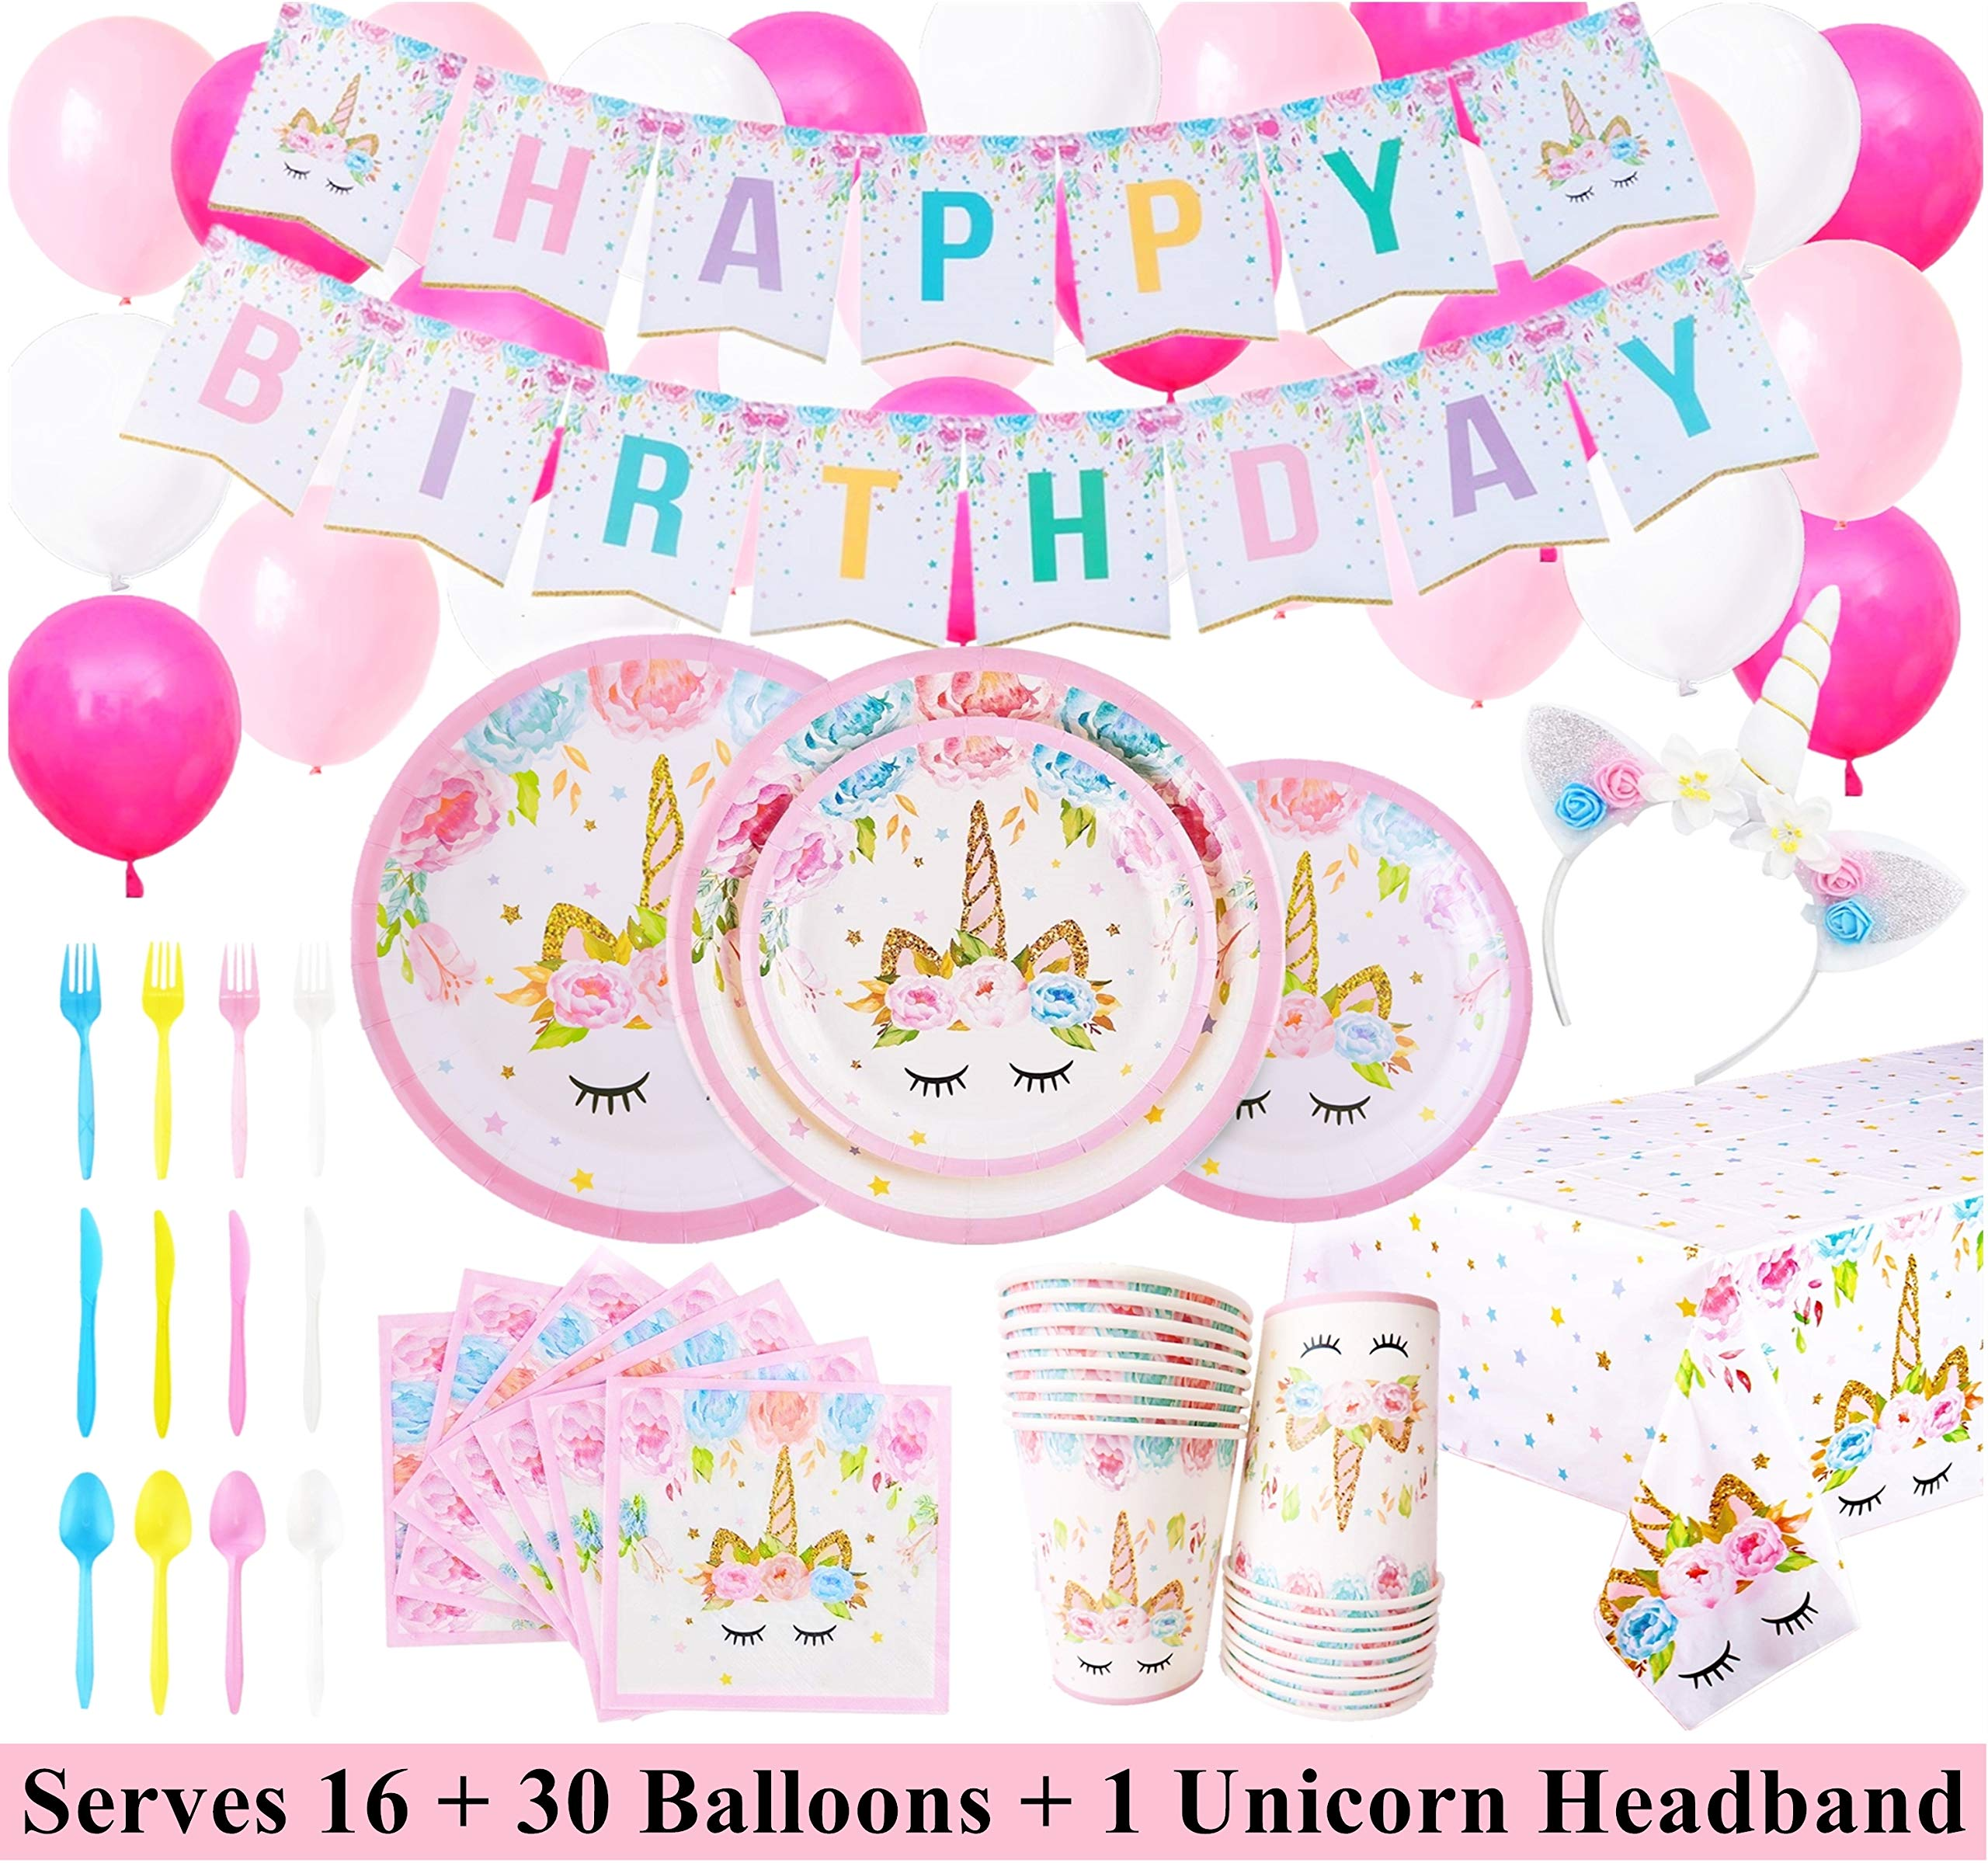 Unicorn Party Supplies Set with BONUS Glittery Unicorn Headband and 30 Balloons | 145 Piece Disposable Unicorn Themed… 3